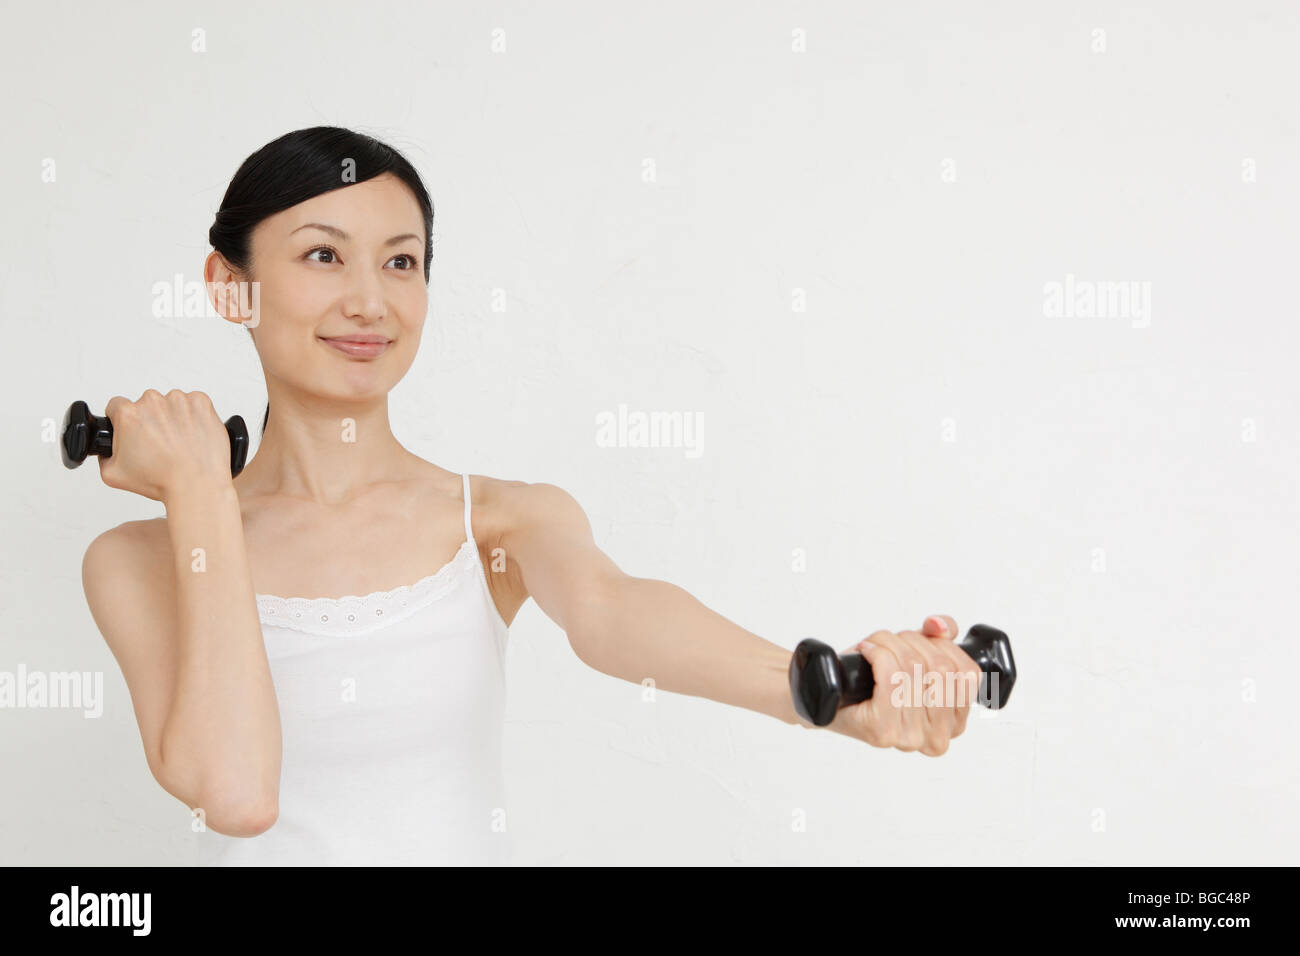 Mid adult woman holding dumbbell - Stock Image